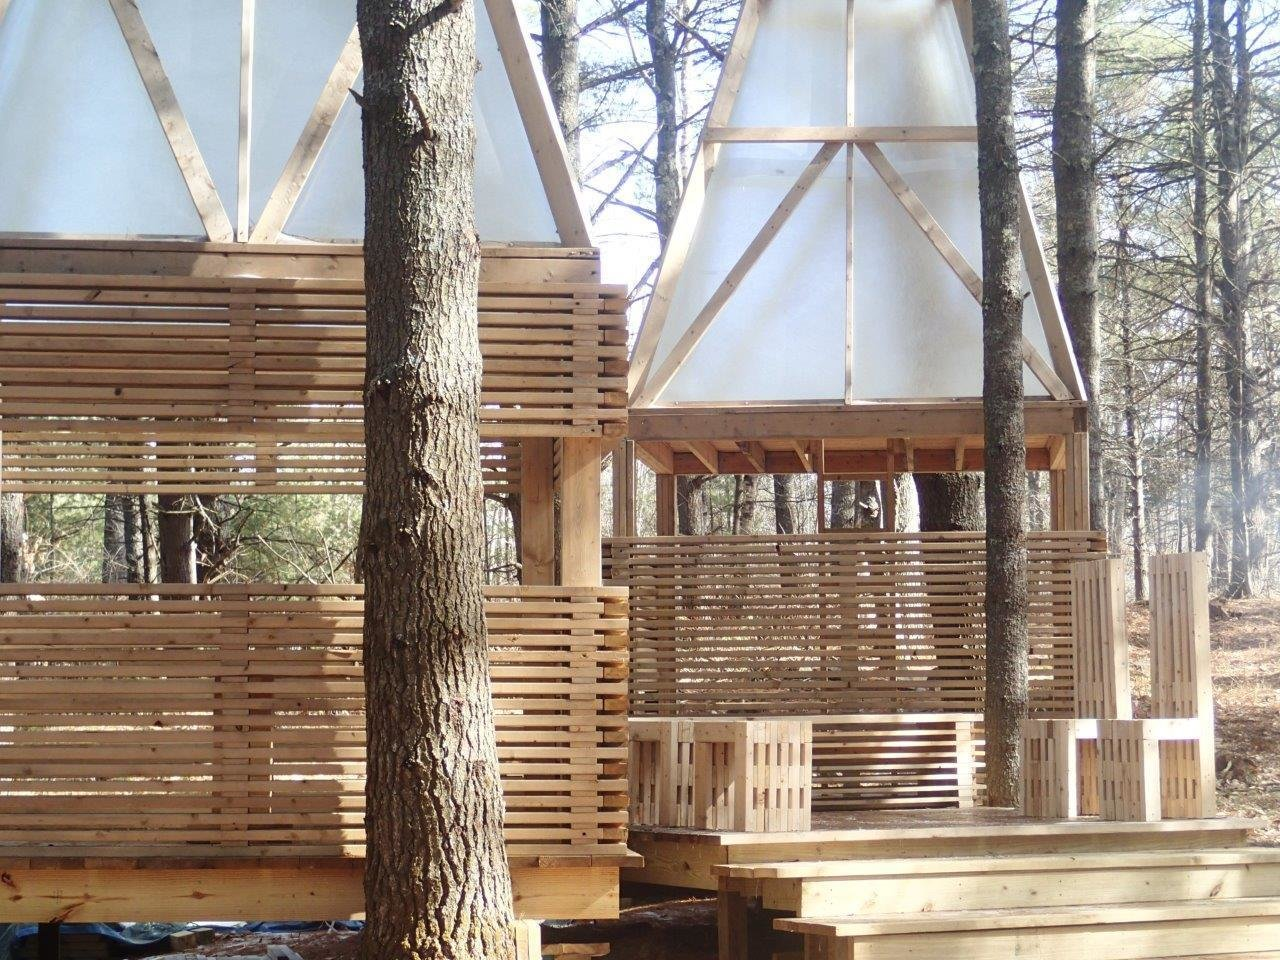 This year's program focused on building a sleeping structure for